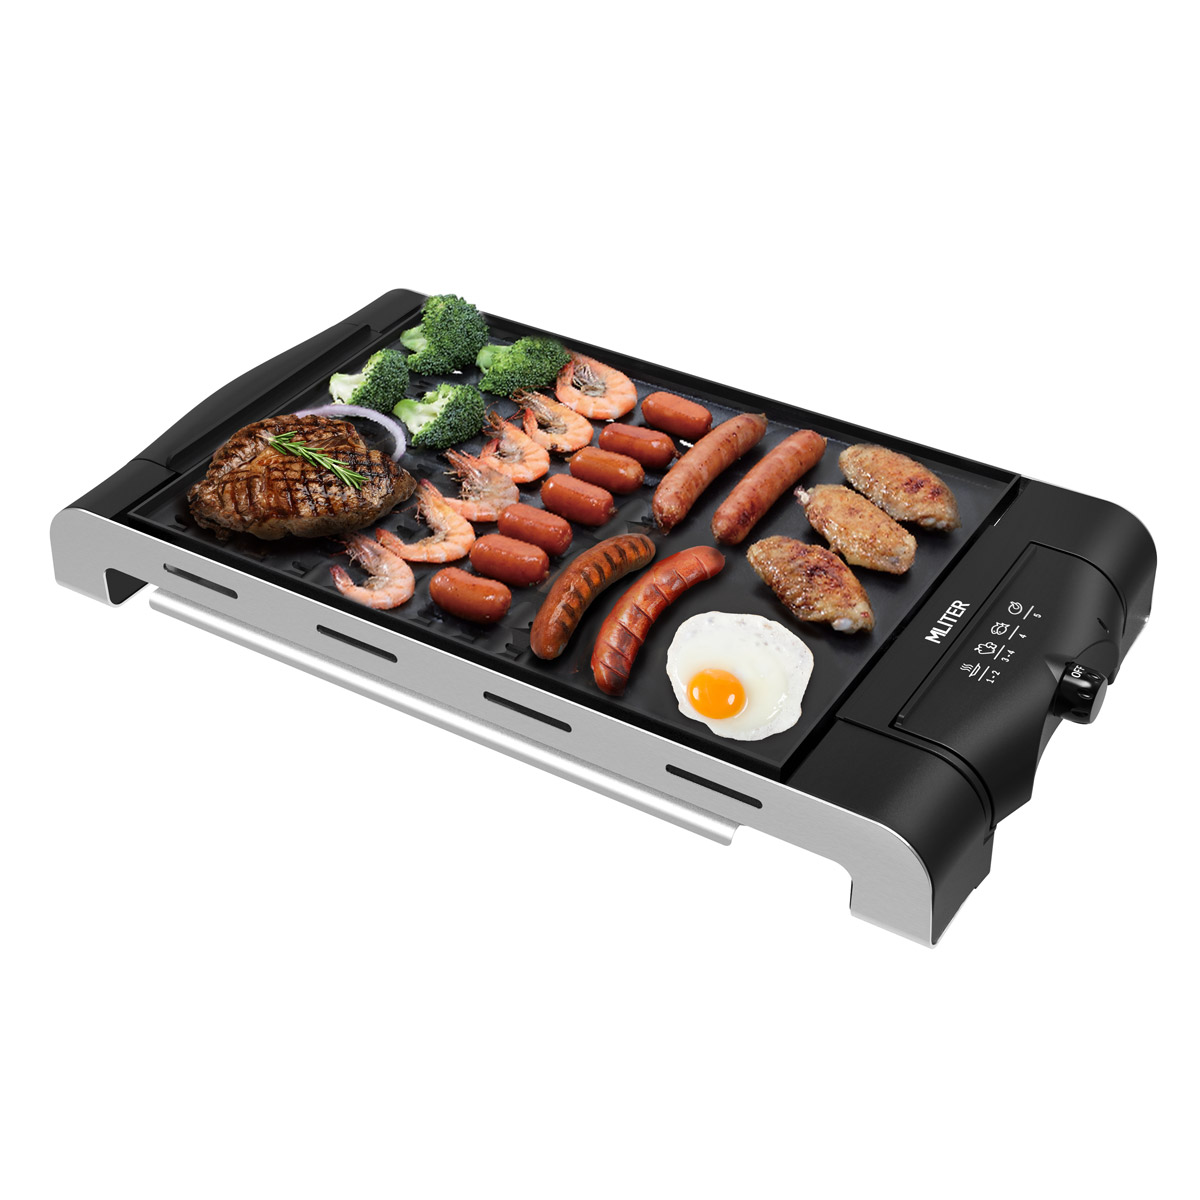 Mliter Electric Non-stick Table Top Grill and Griddle, Indoor Barbecue Hotplate, 1120 Watts